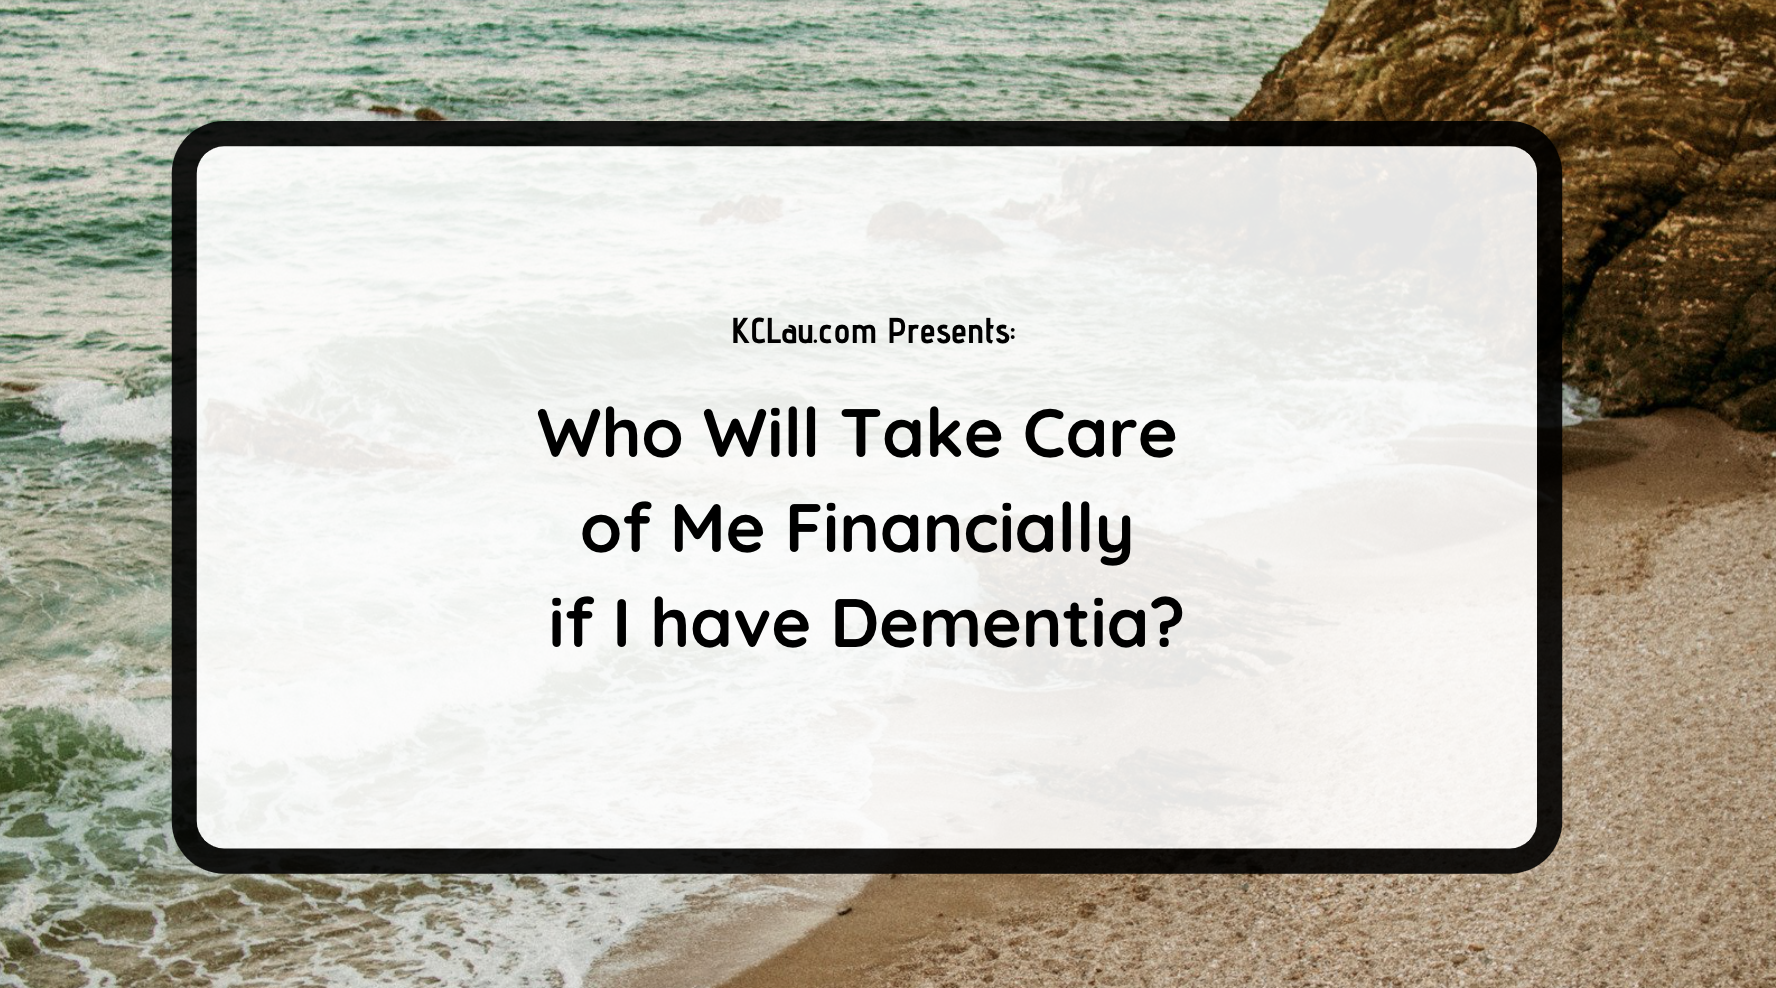 Who Will Take Care of Me Financially if I have Dementia?